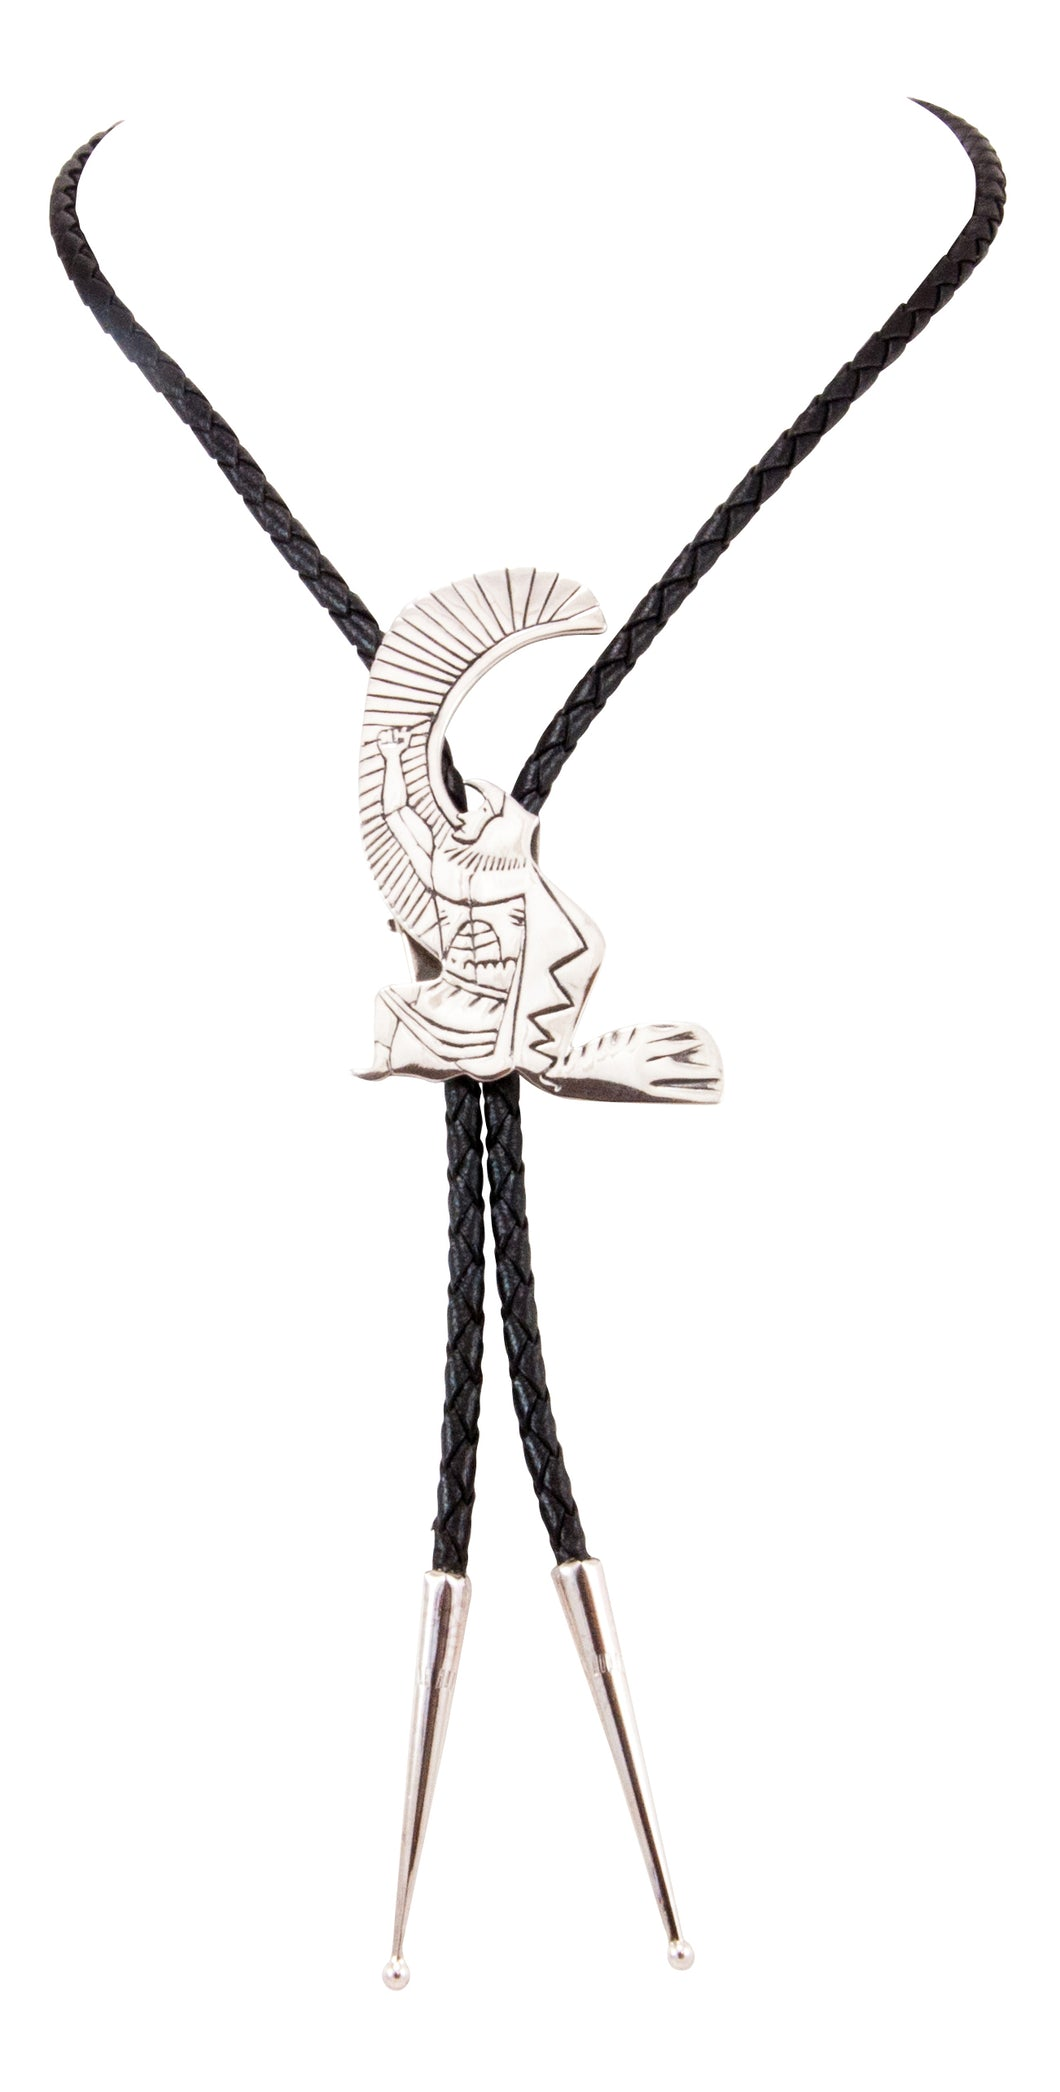 Navajo Native American Sterling Silver Eagle Dancer Bolo Tie by Begay SKU232851